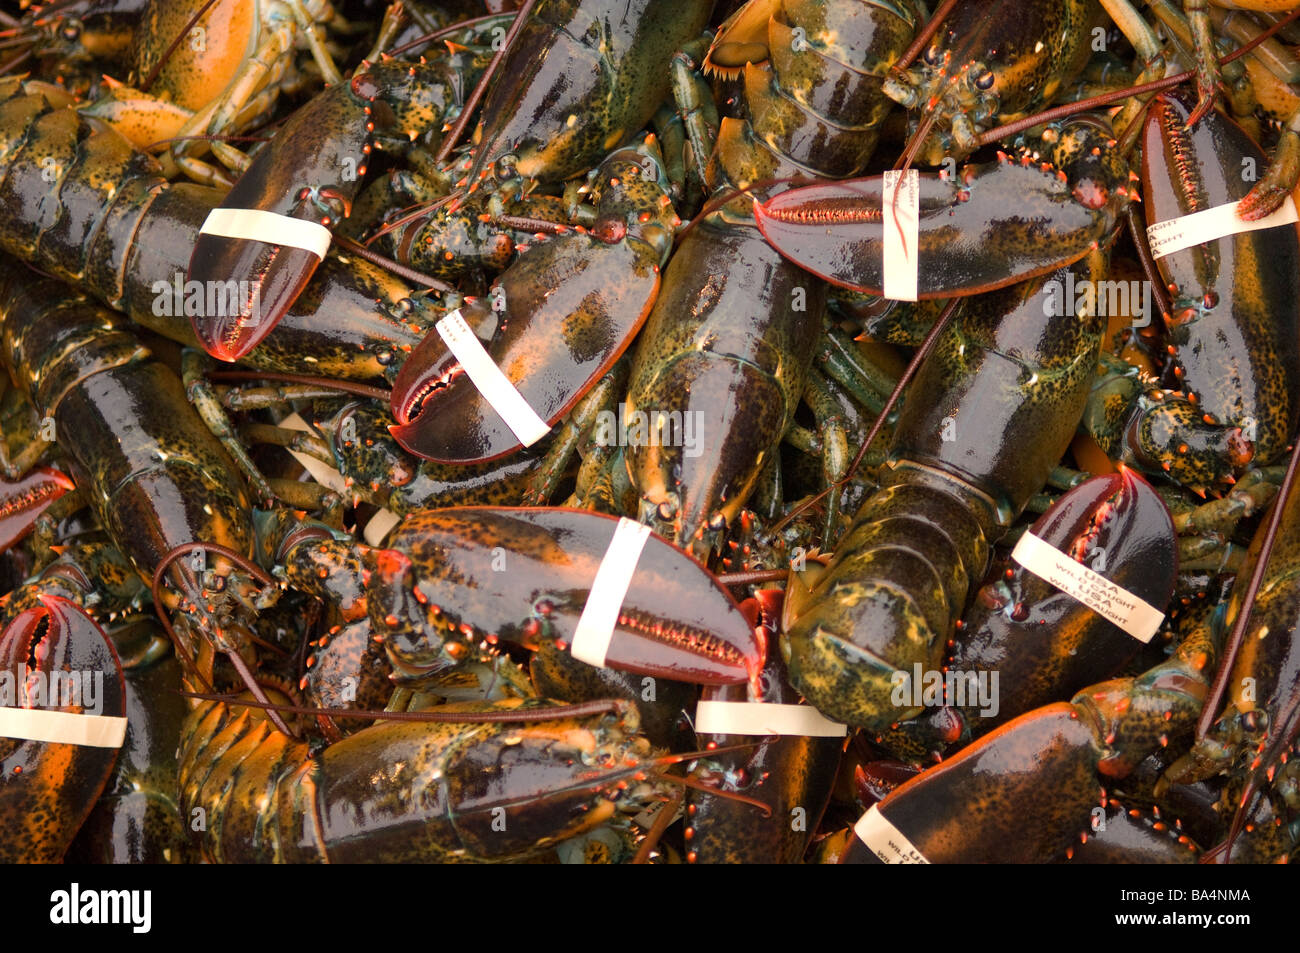 Live lobsters at market - Stock Image